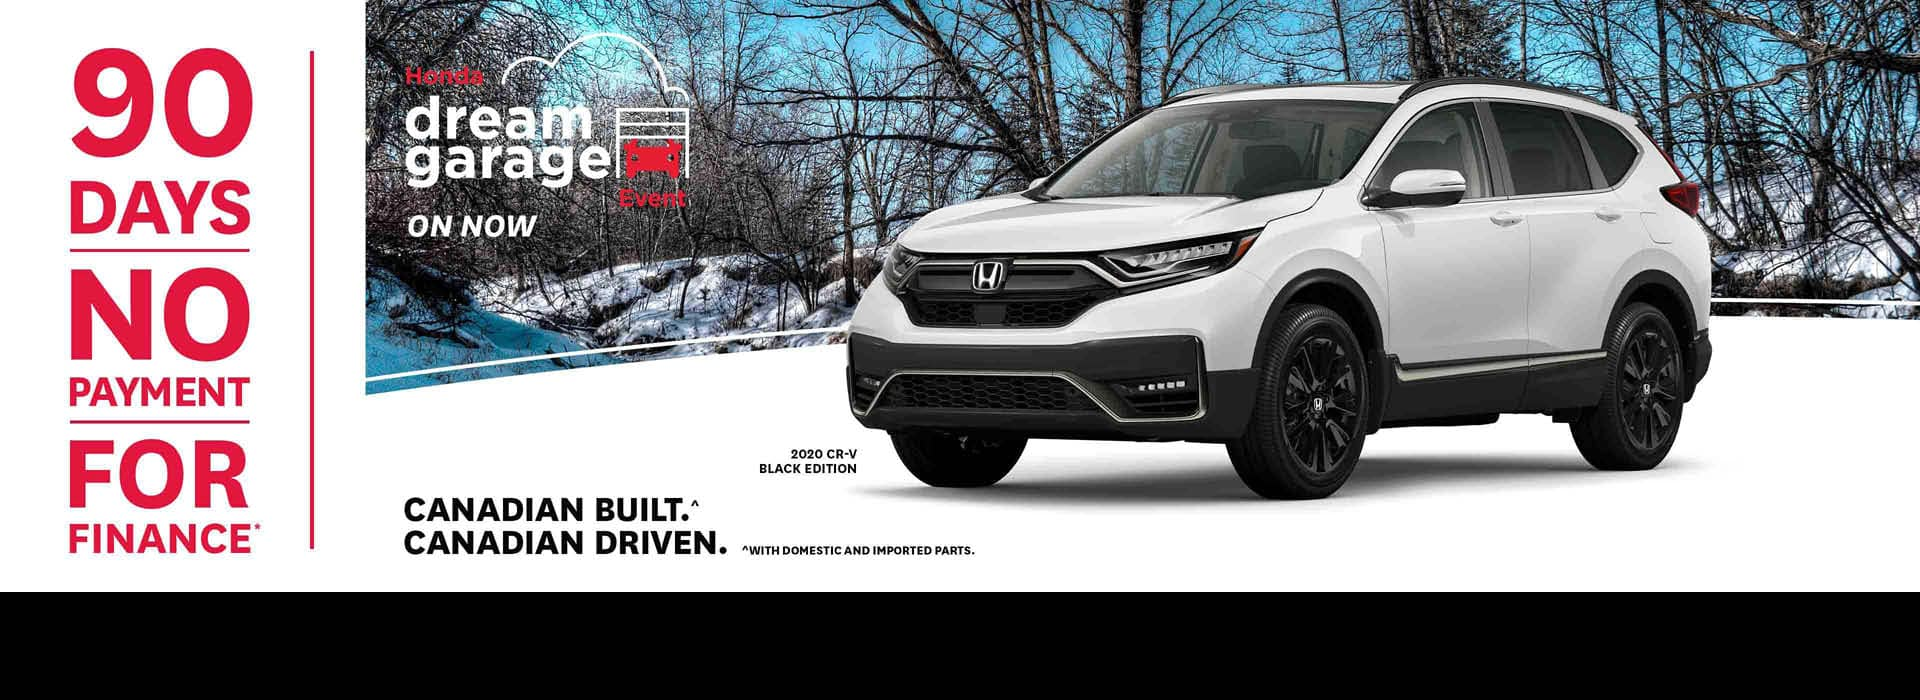 Honda_Desktop_Home_Page_Hero_Banner_Jan2020